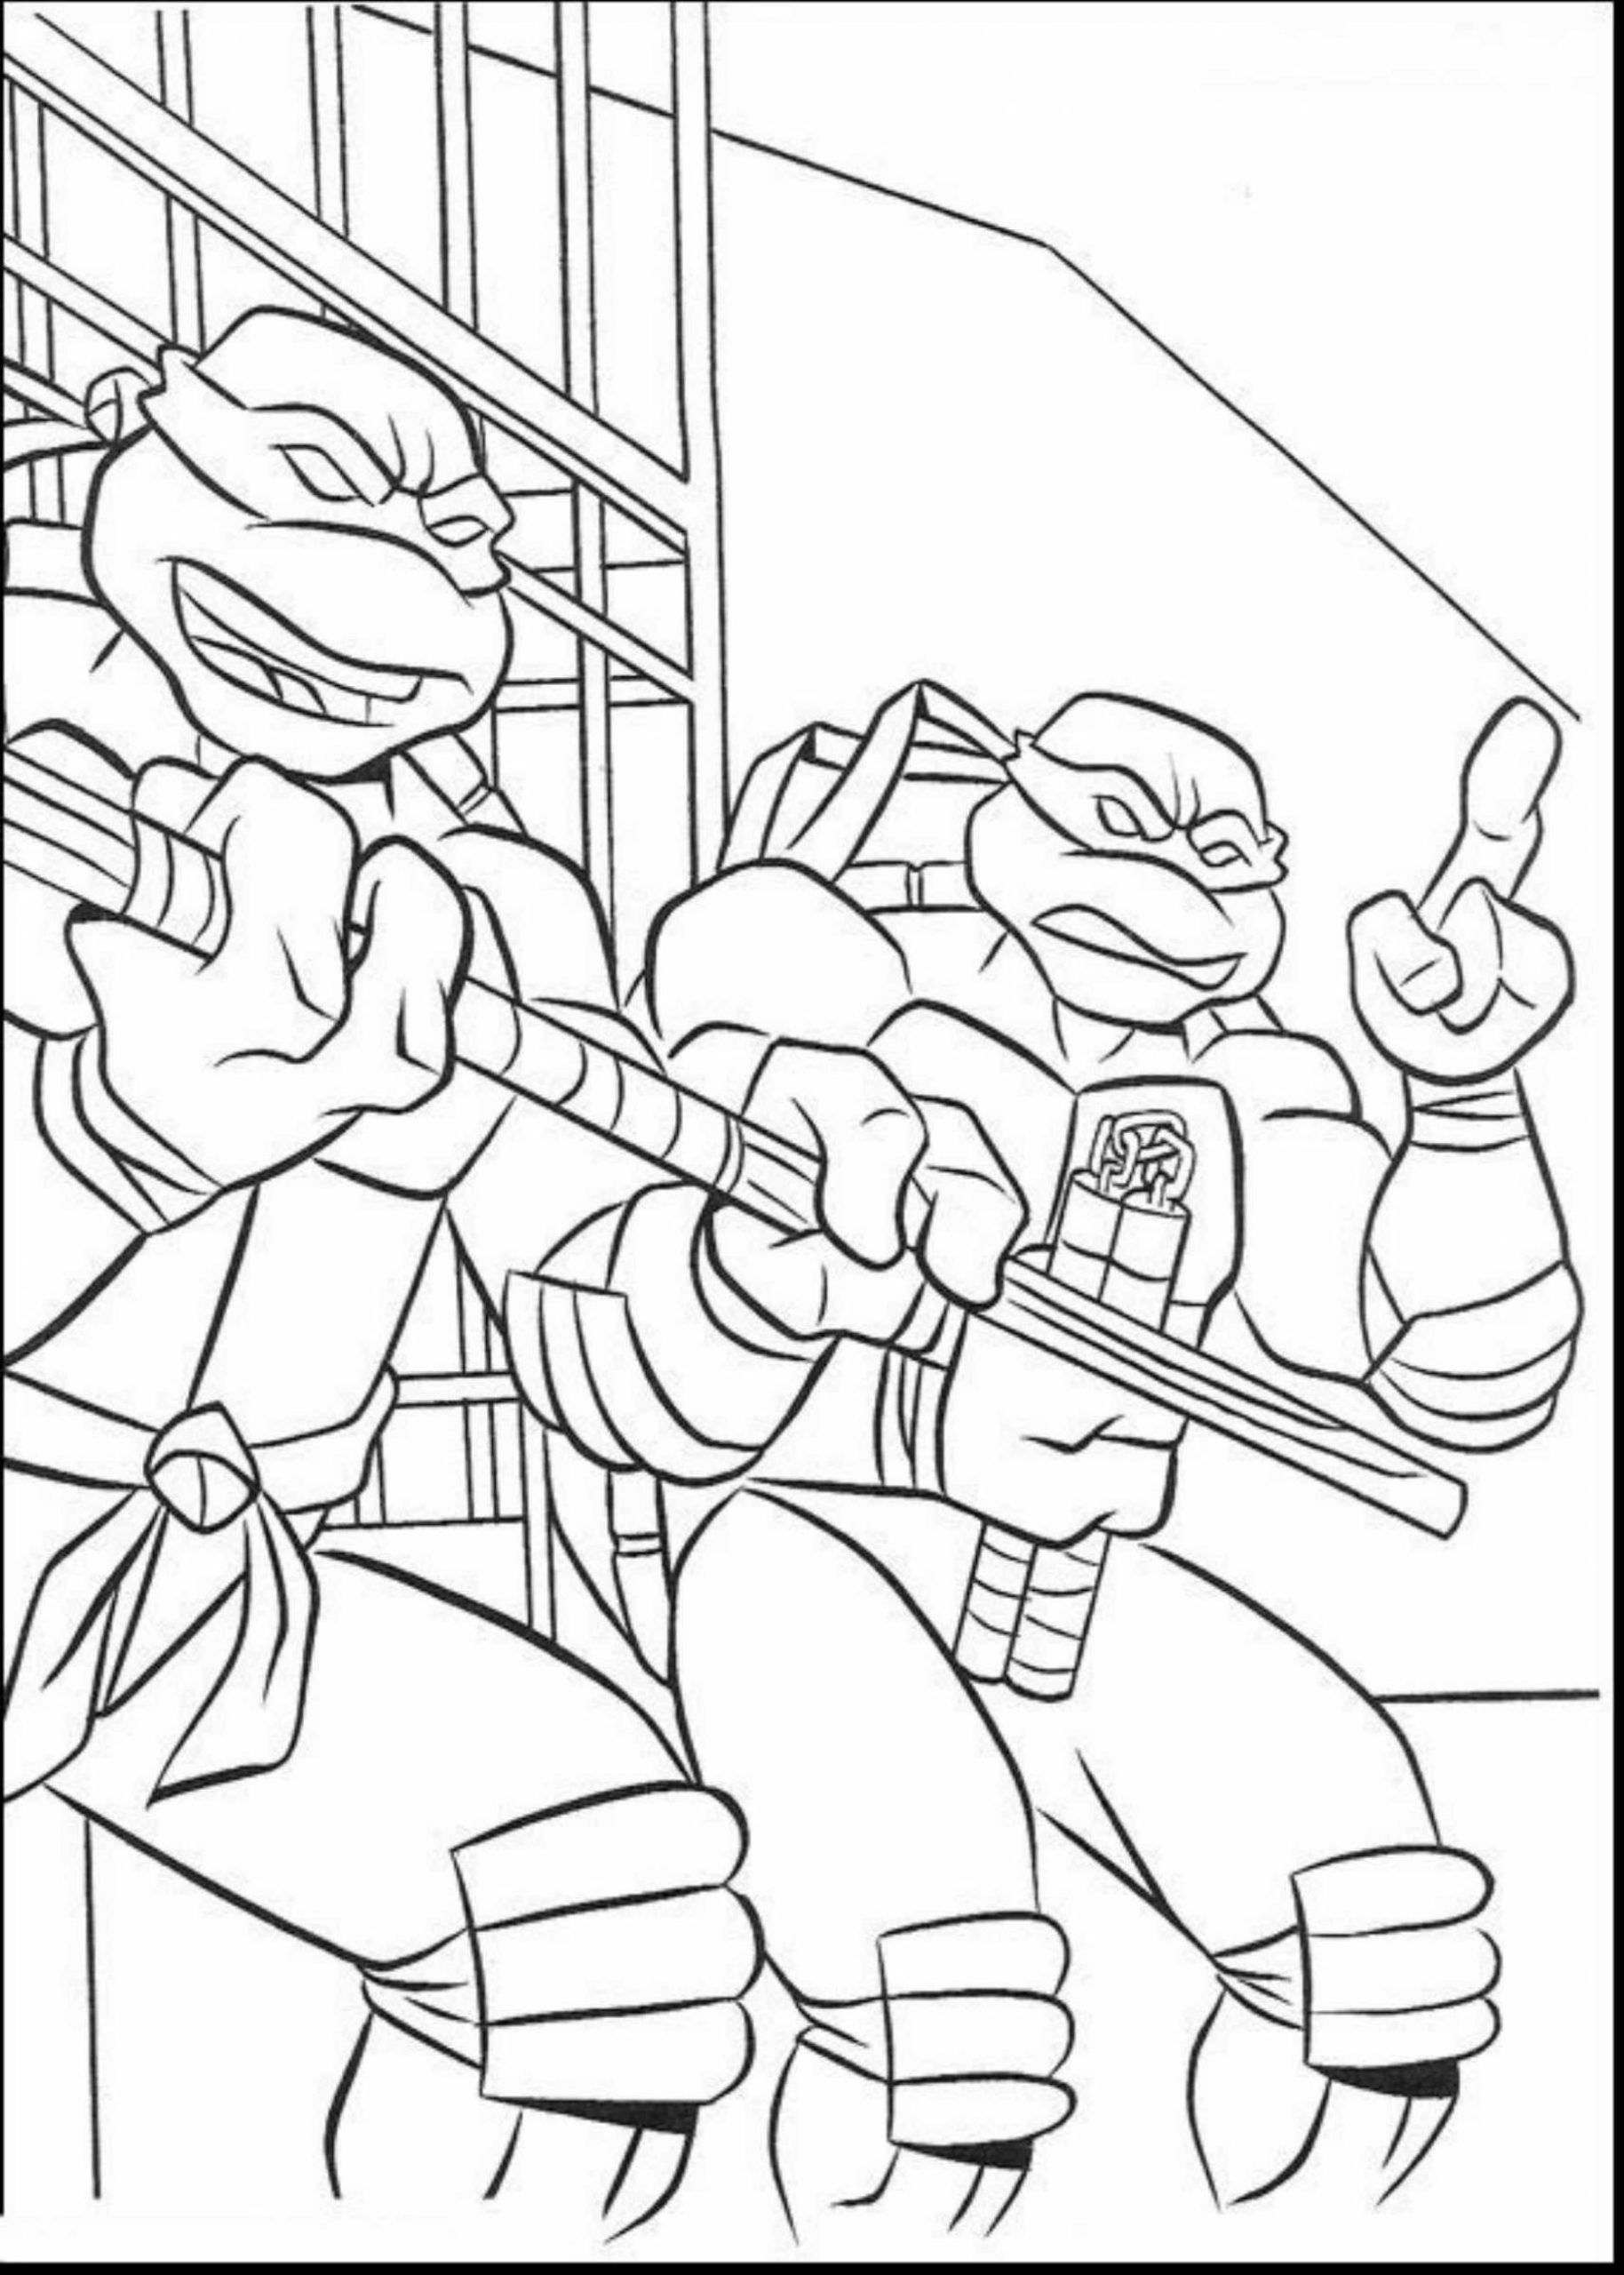 tmnt pictures michelangelo pin on turtle coloring page tmnt pictures michelangelo